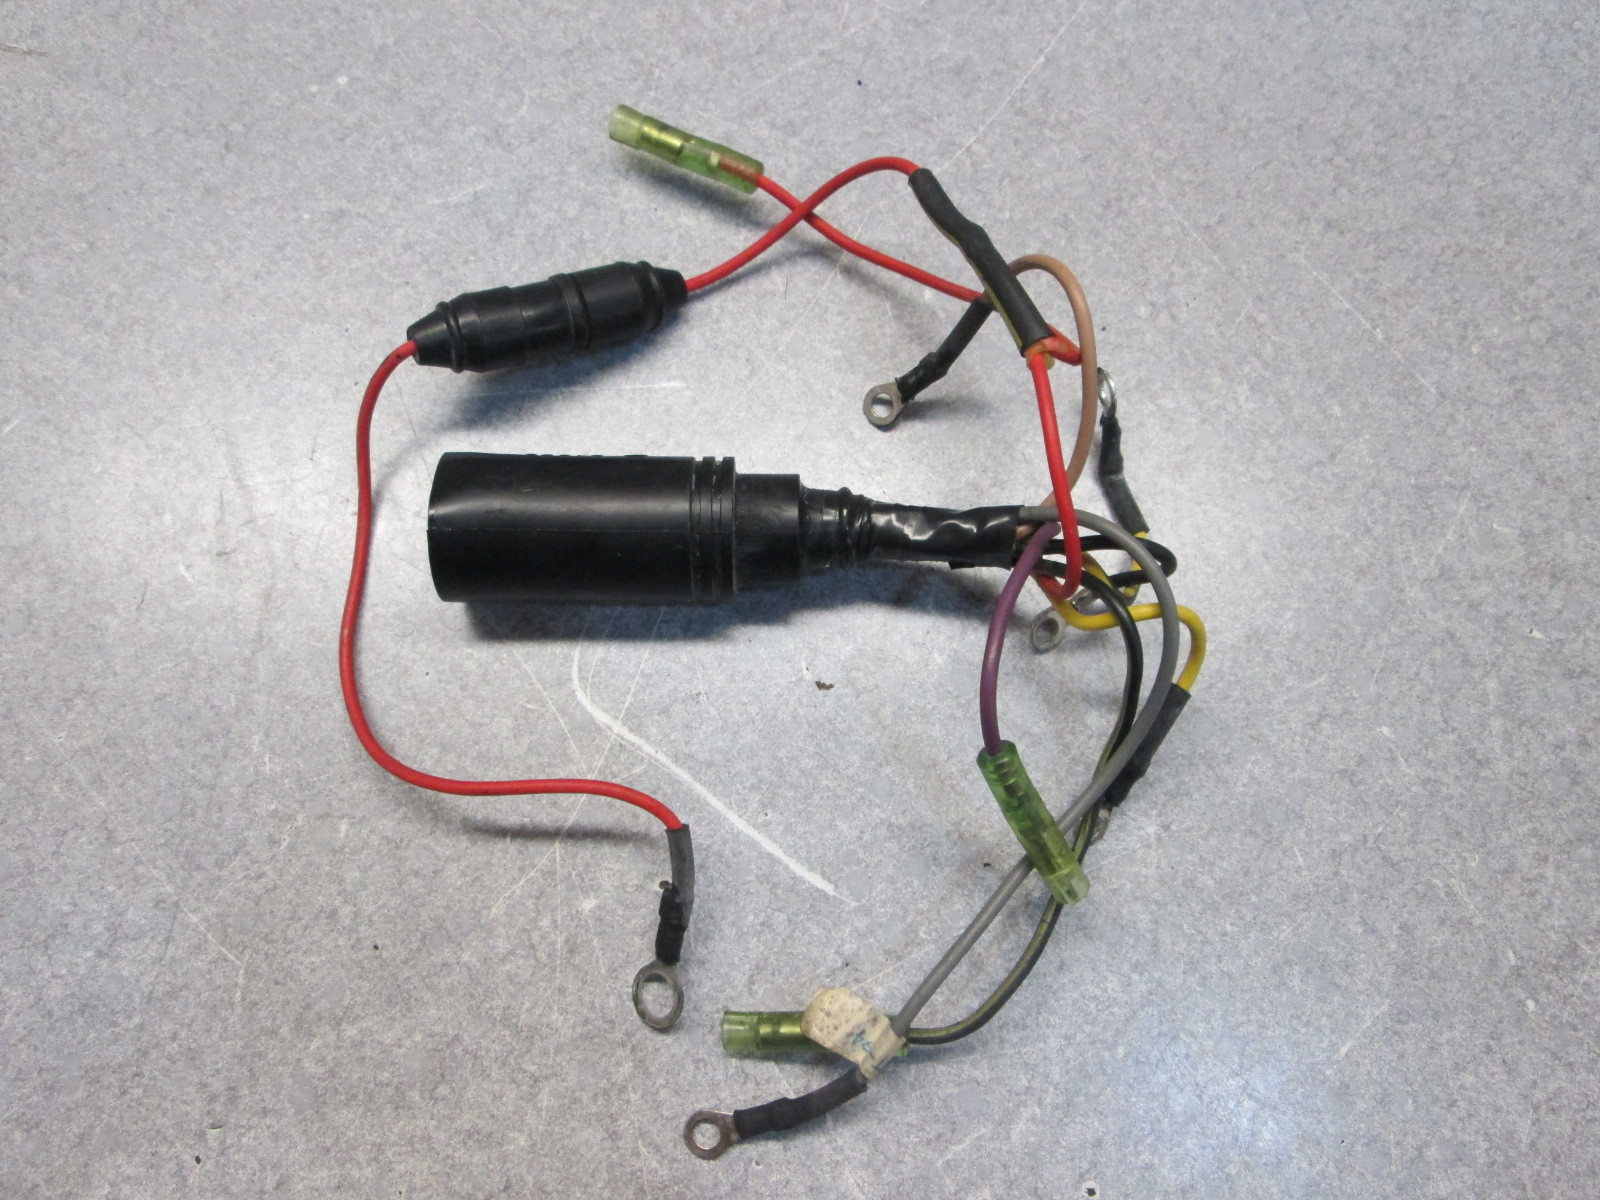 Wiring Harness For Mercury Outboard Motor Diagrams 45876 Mercruiser 84 41591a13 Mariner 75 90 Hp Engine Wire Tachometer